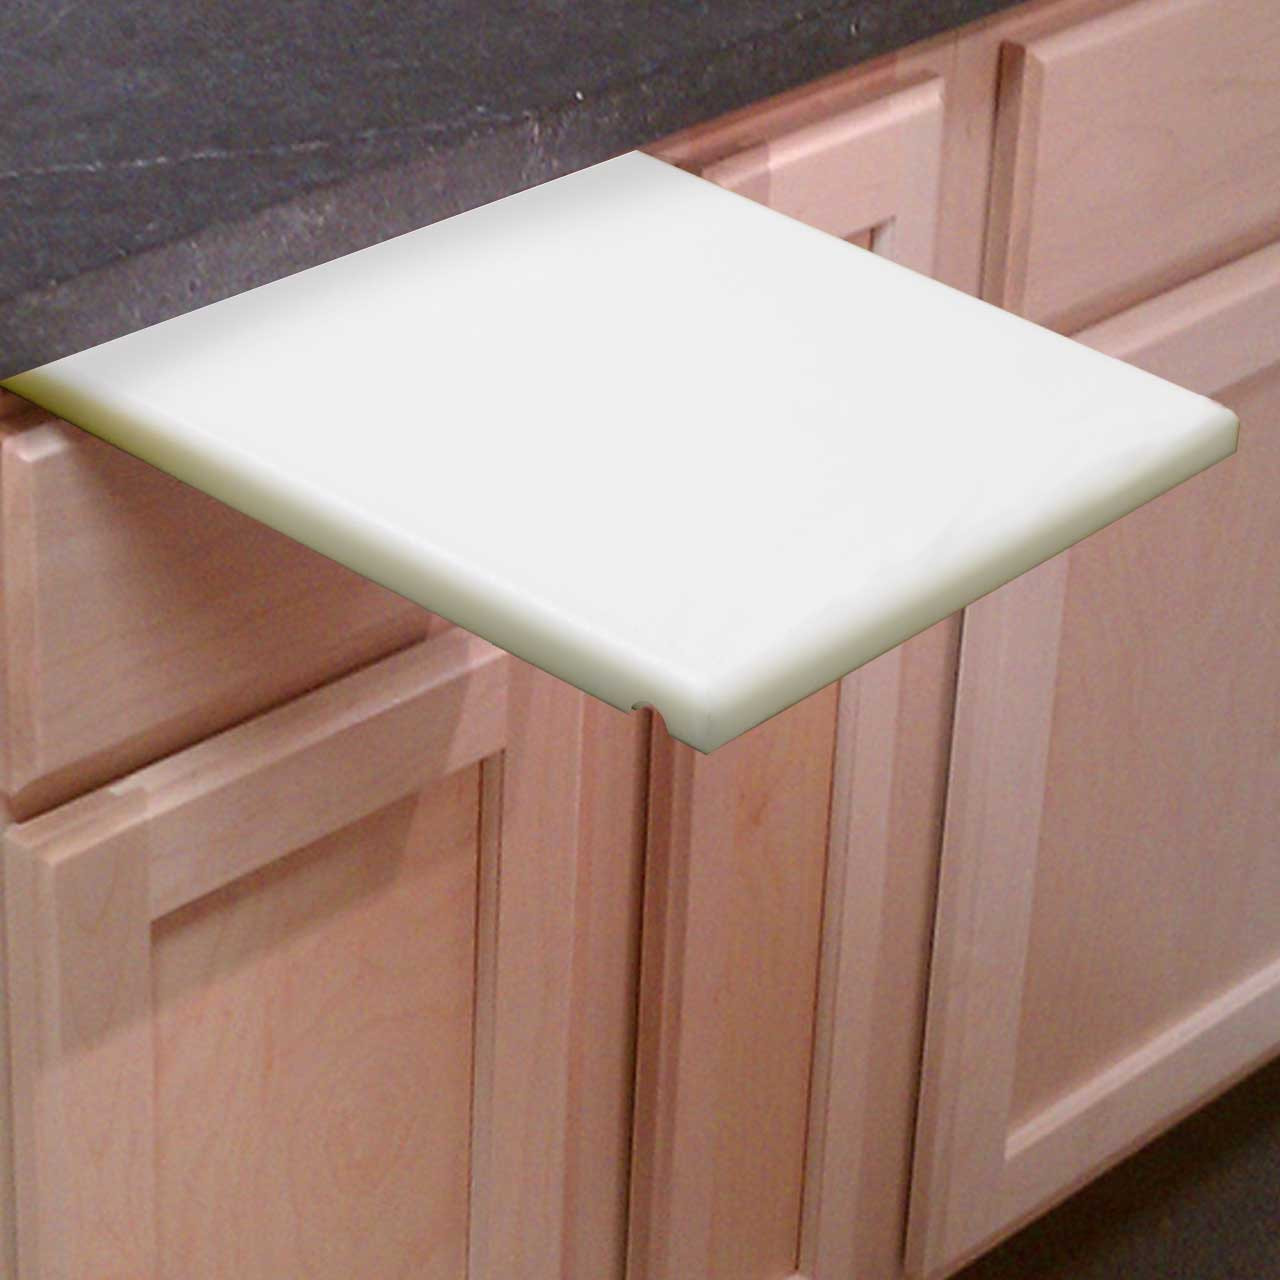 pull out white cutting board   inch thick  cutting board company, Kitchen design